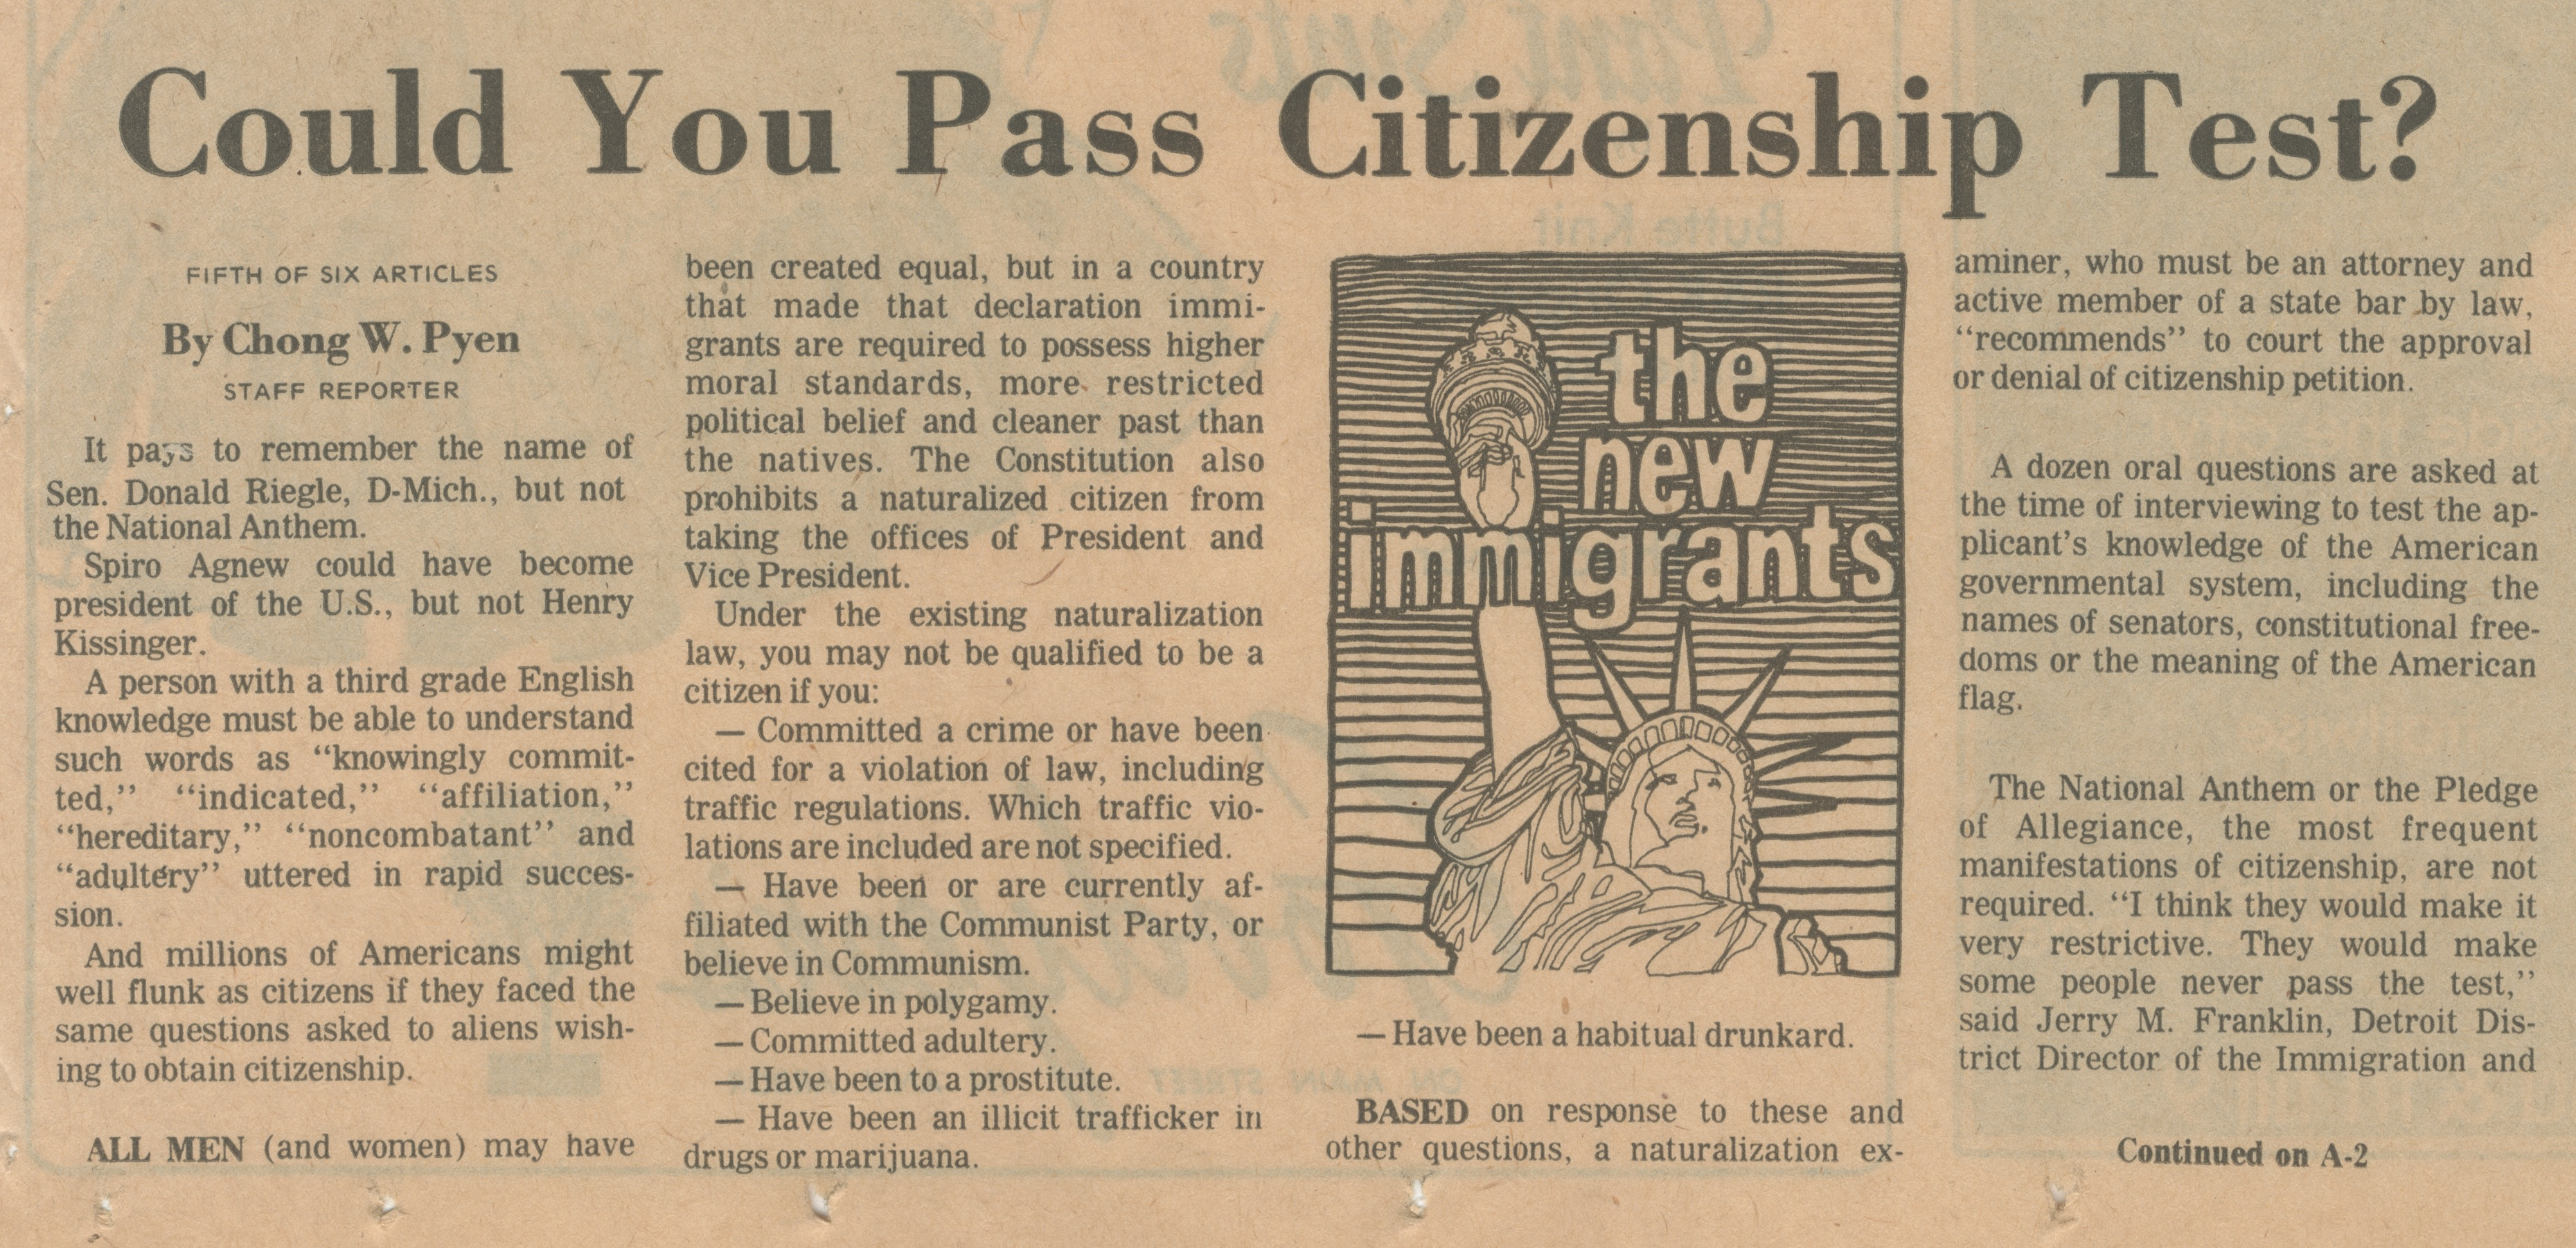 Could You Pass Citizenship Test? image